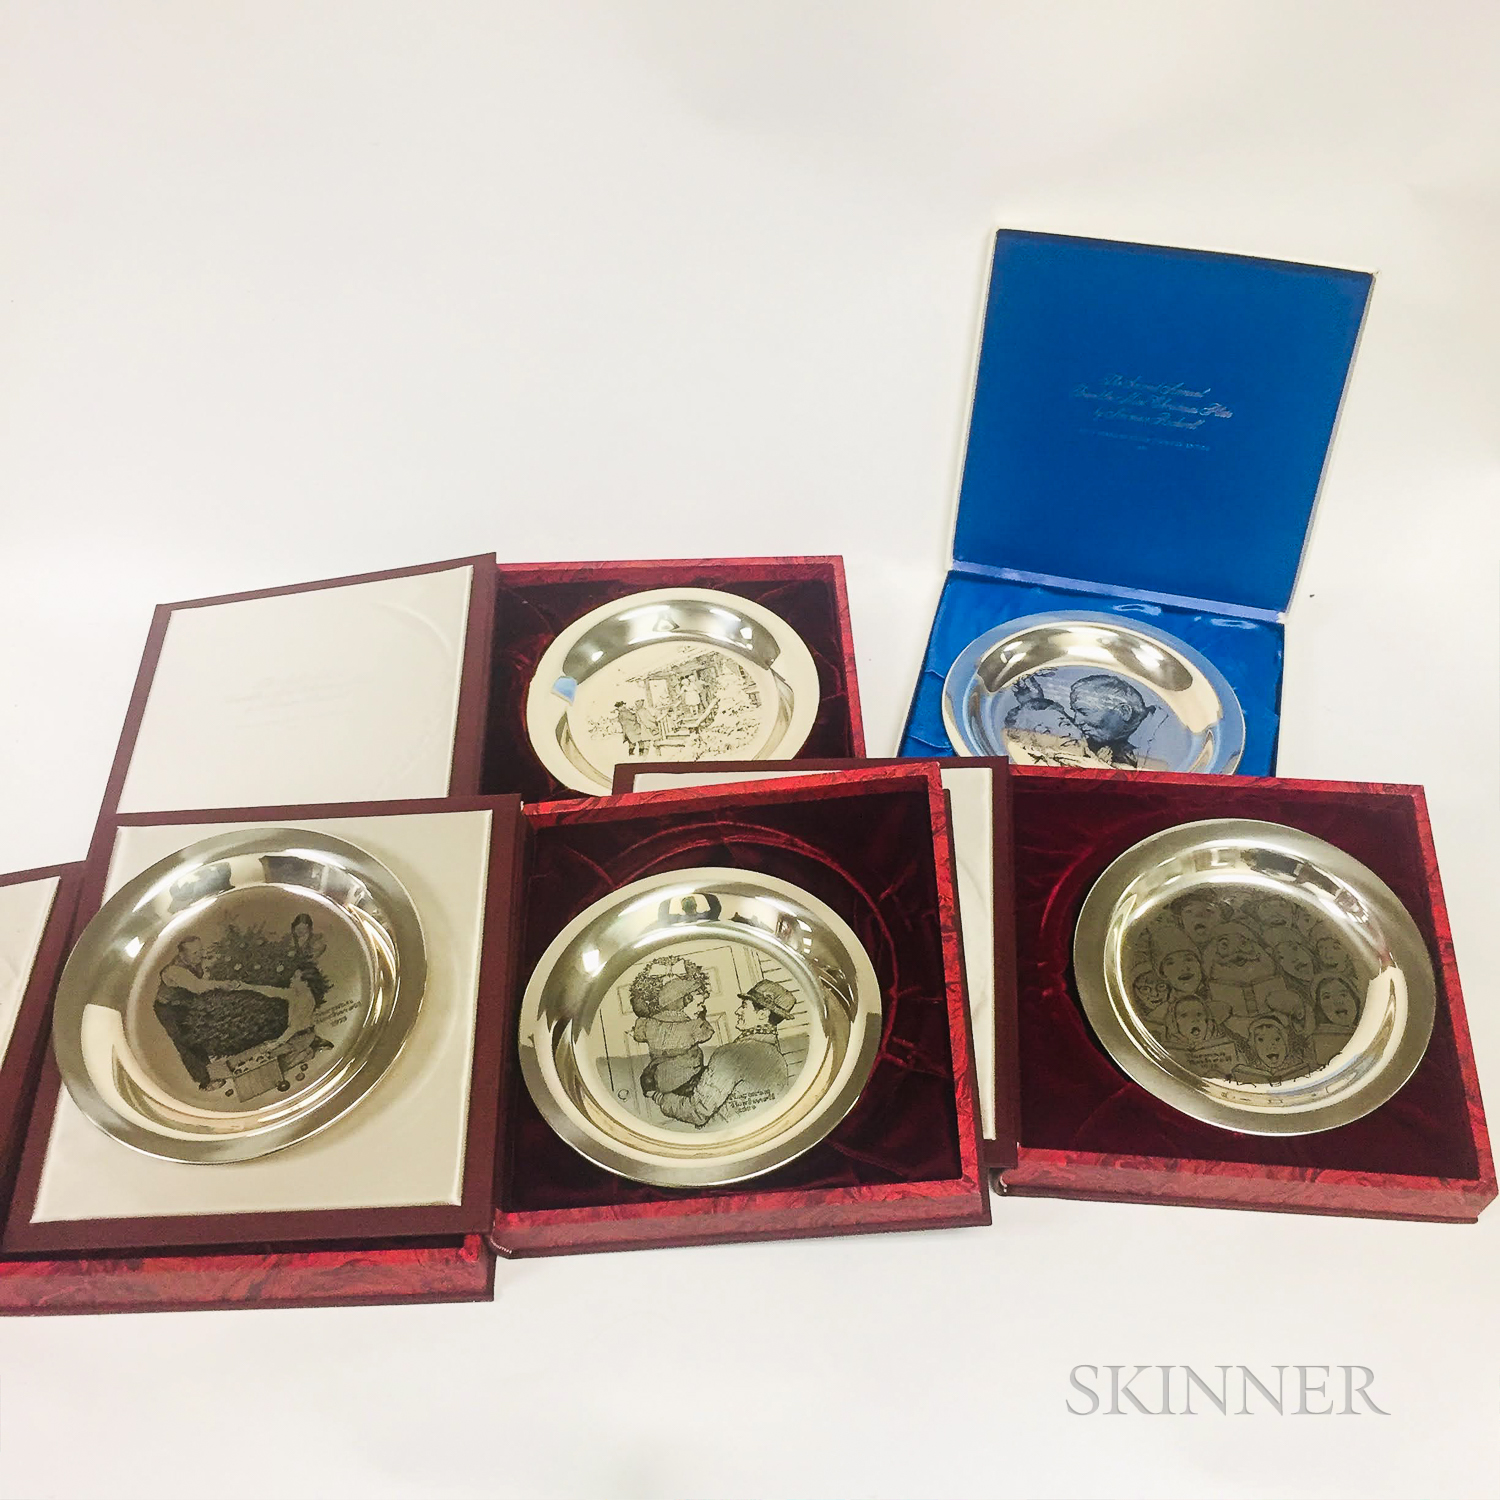 Five Franklin Mint Norman Rockwell Sterling Silver Commemorative Christmas Plates